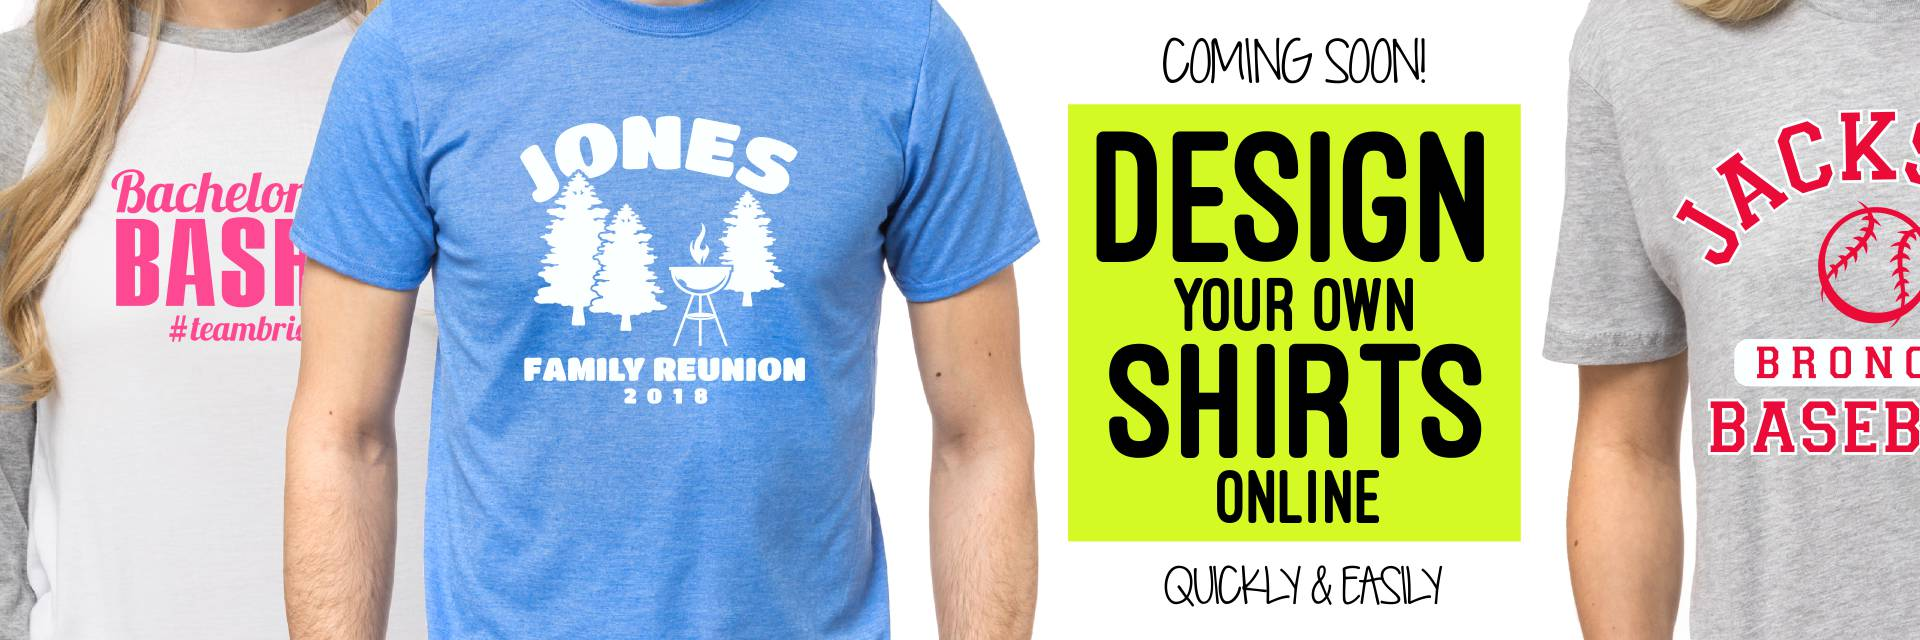 Design Your Own Shirts Online Grasel Graphics